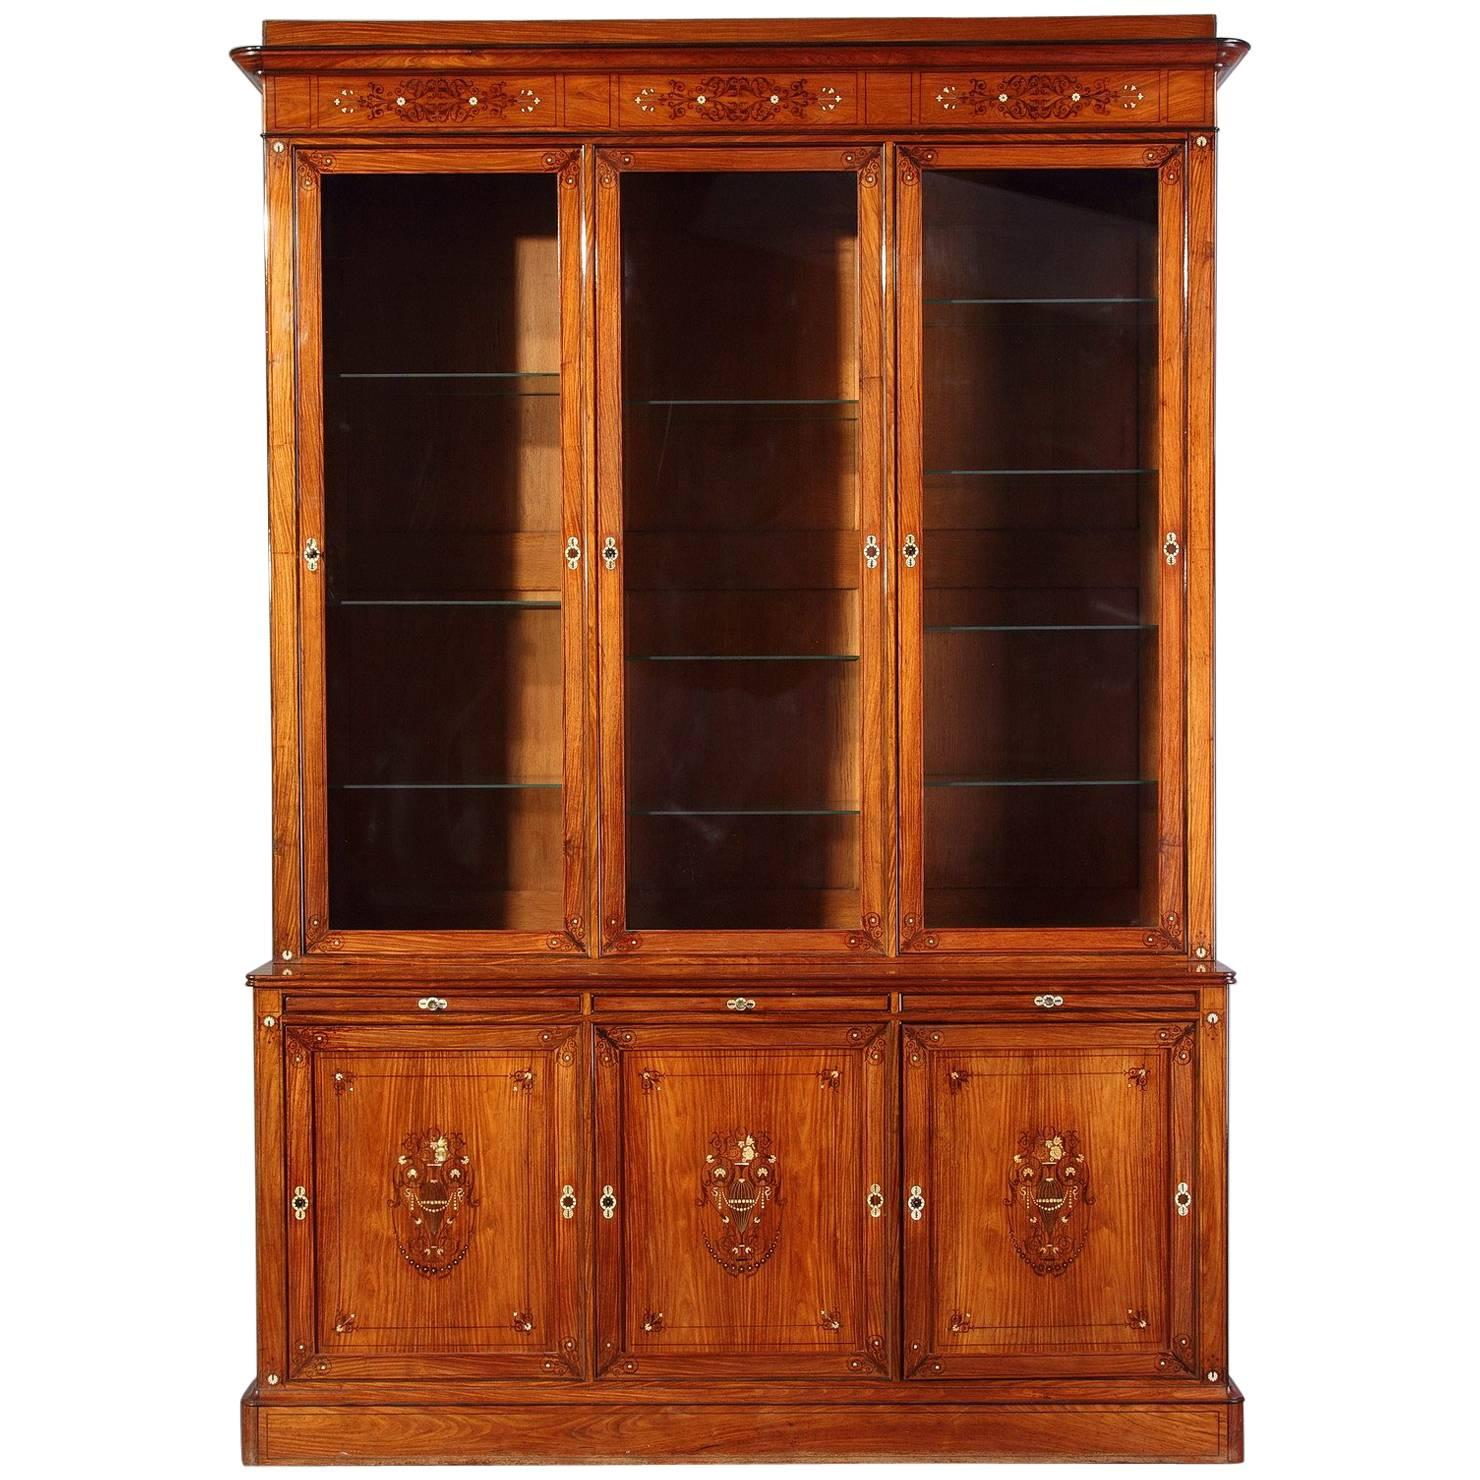 early 19th century charles x bookcase in rosewood veneer